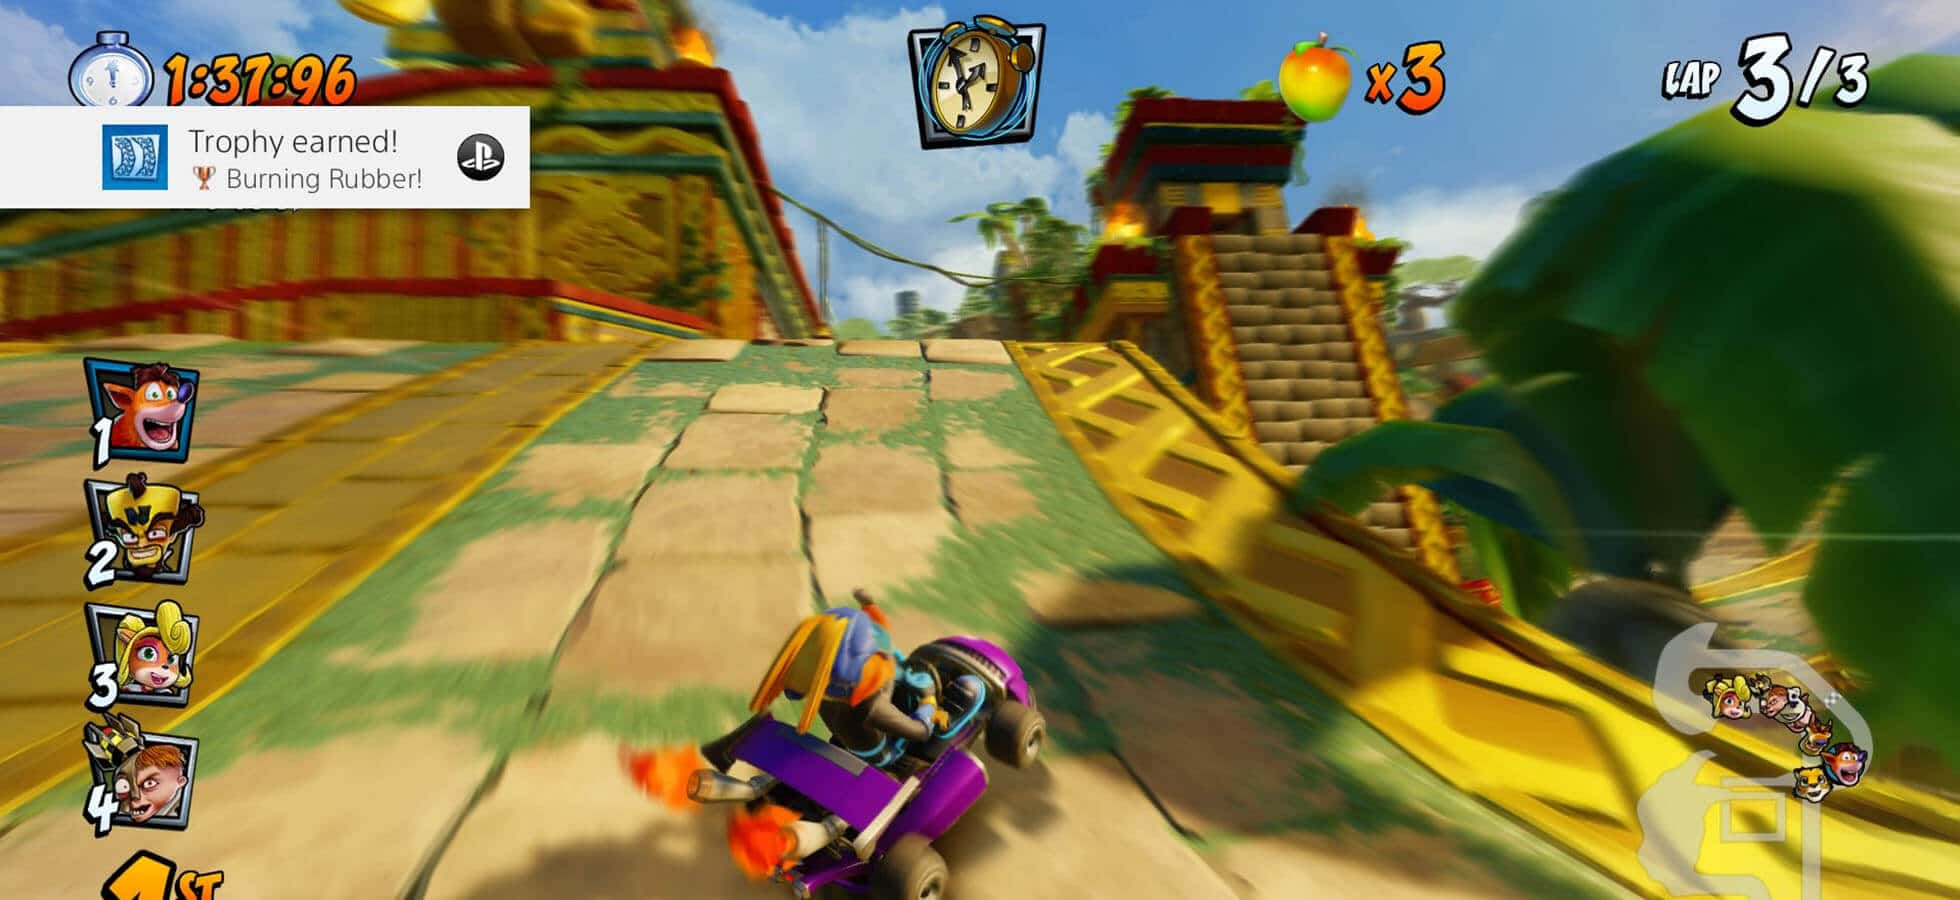 6 Use power ups in optimal places - Crash Team Racing